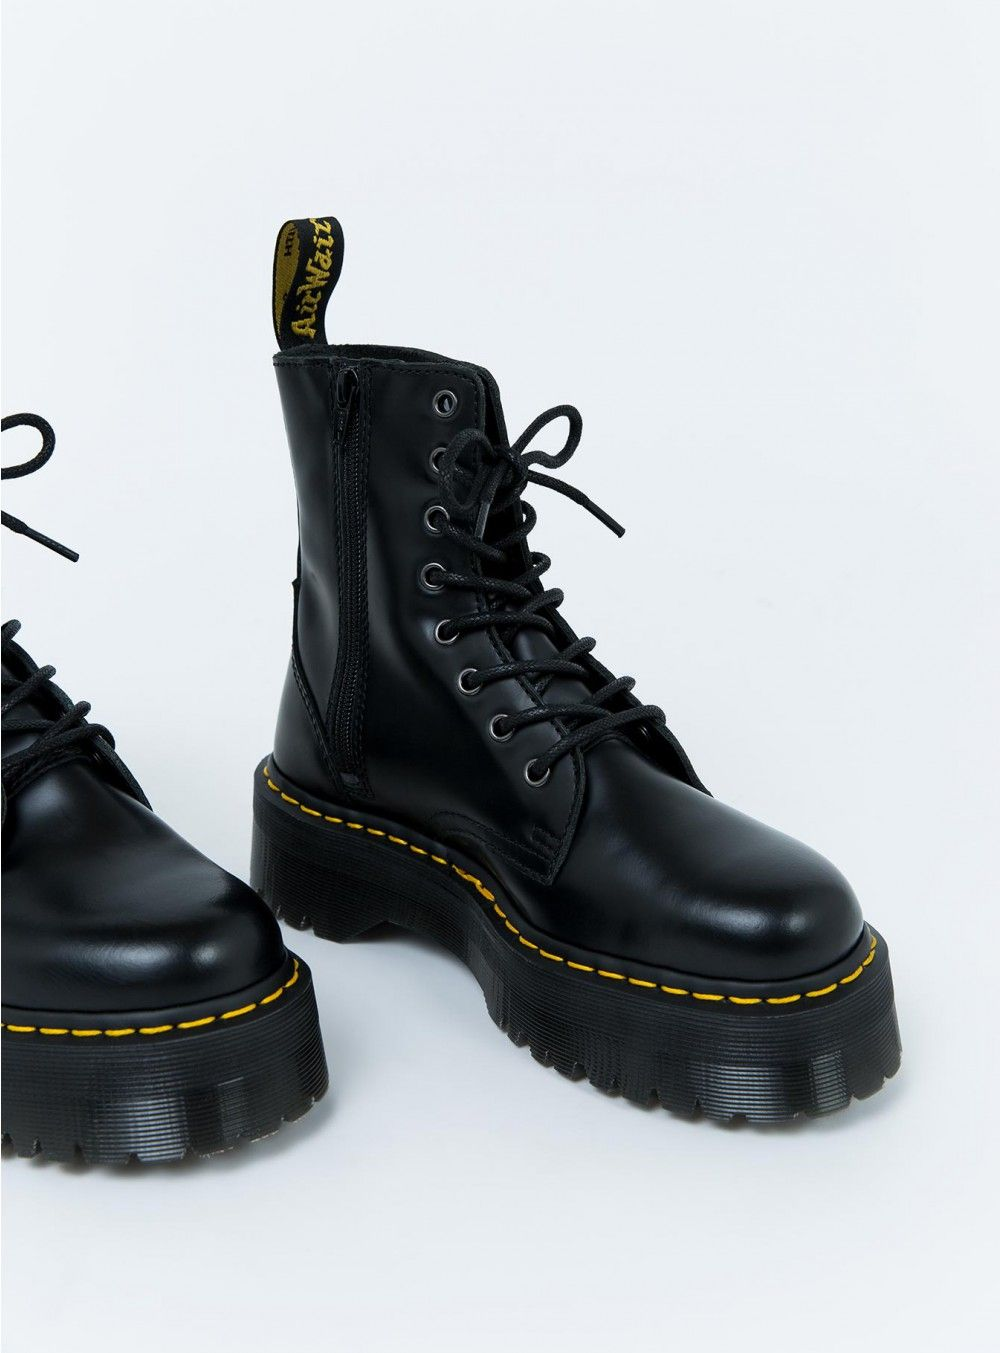 3d2b979420718f Dr. Martens Jadon Boots Black Polished. You can wear them with tight mini  dress